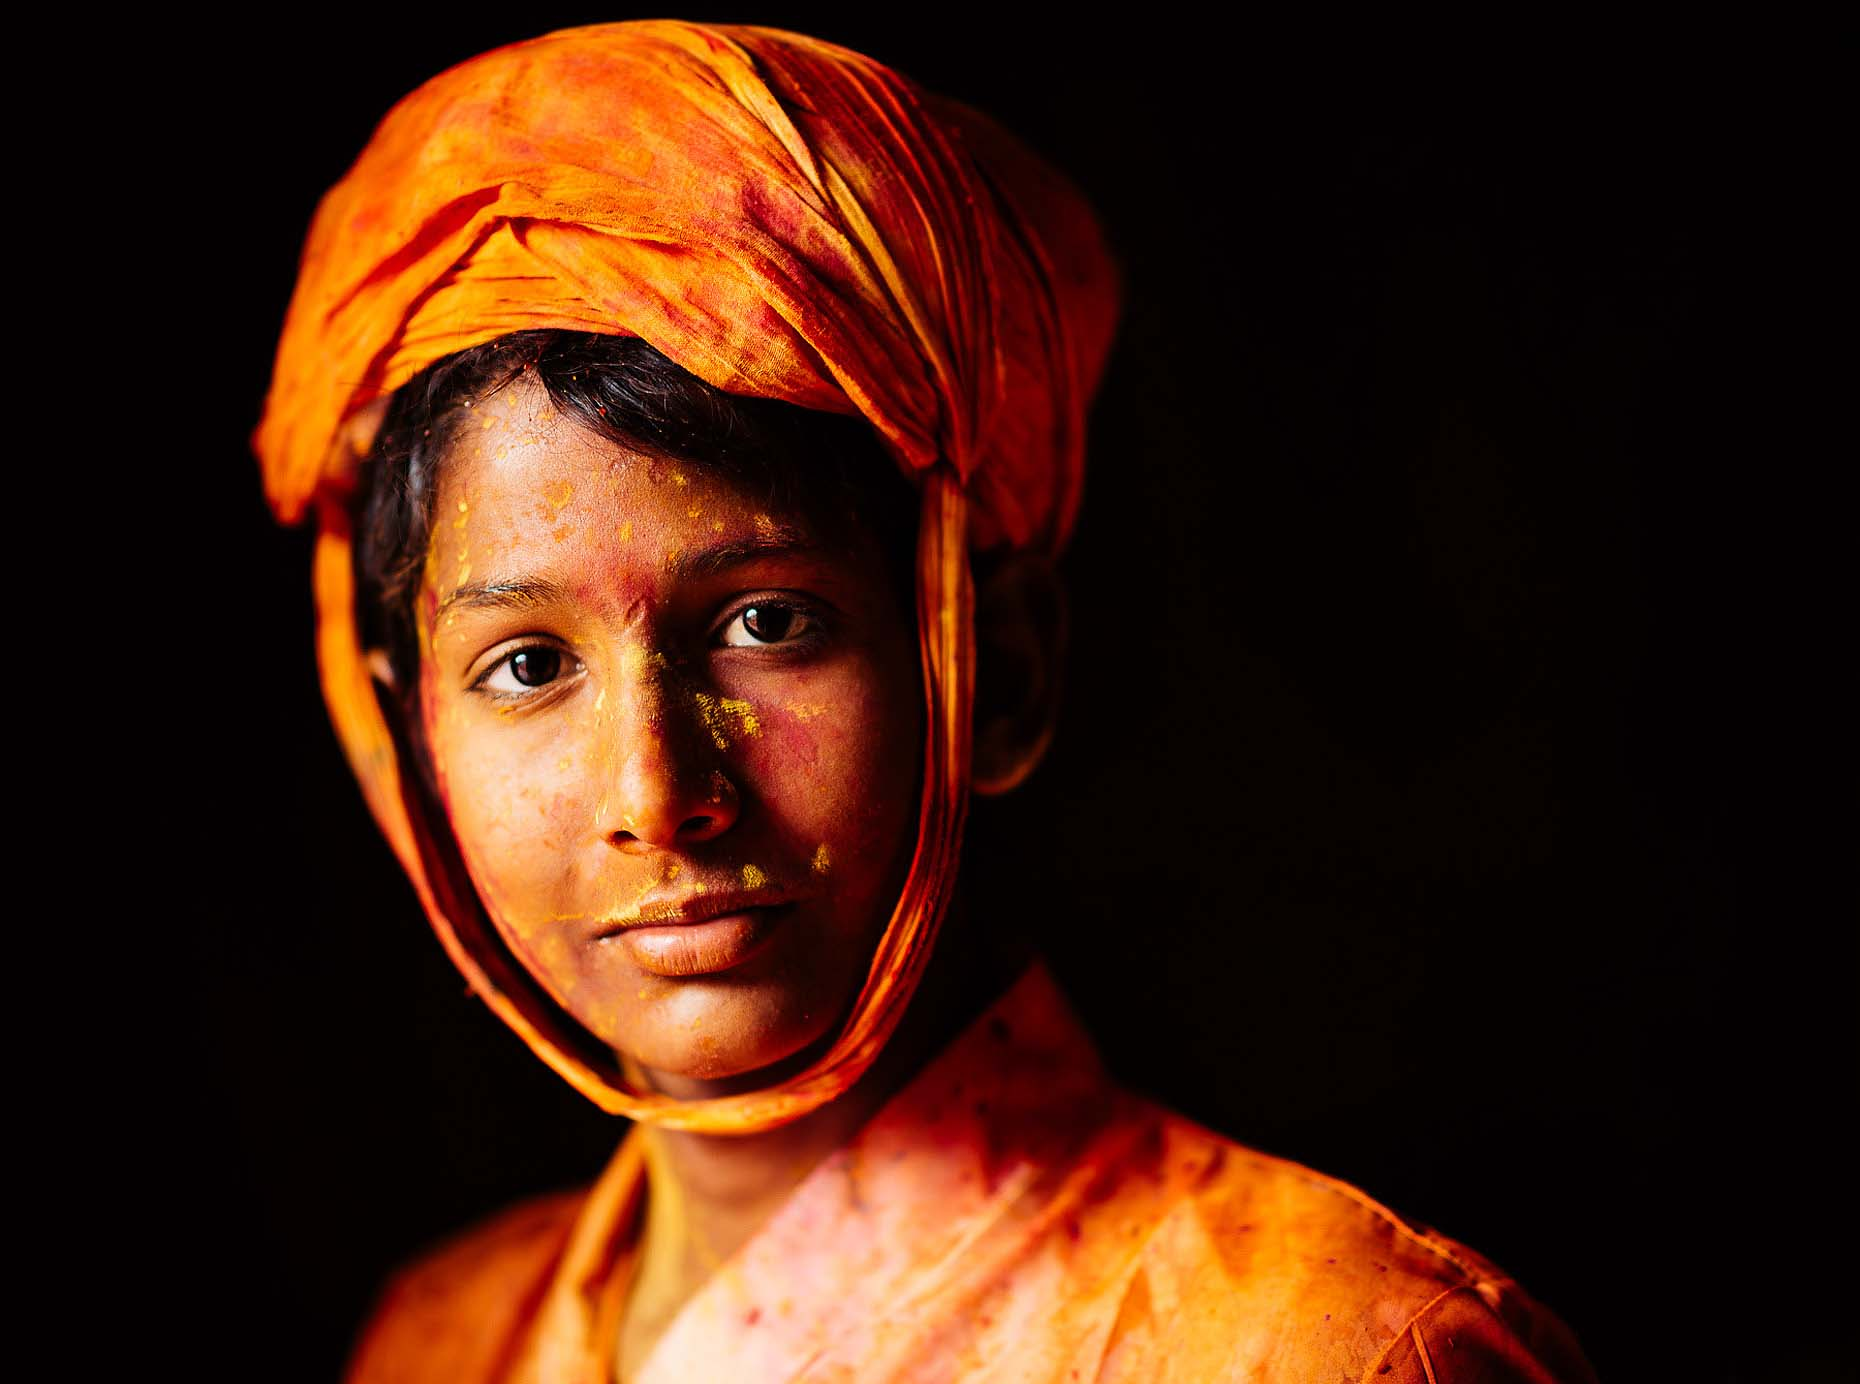 Portrait-Travel-Orange-Holi-Festival-Colour-India-019